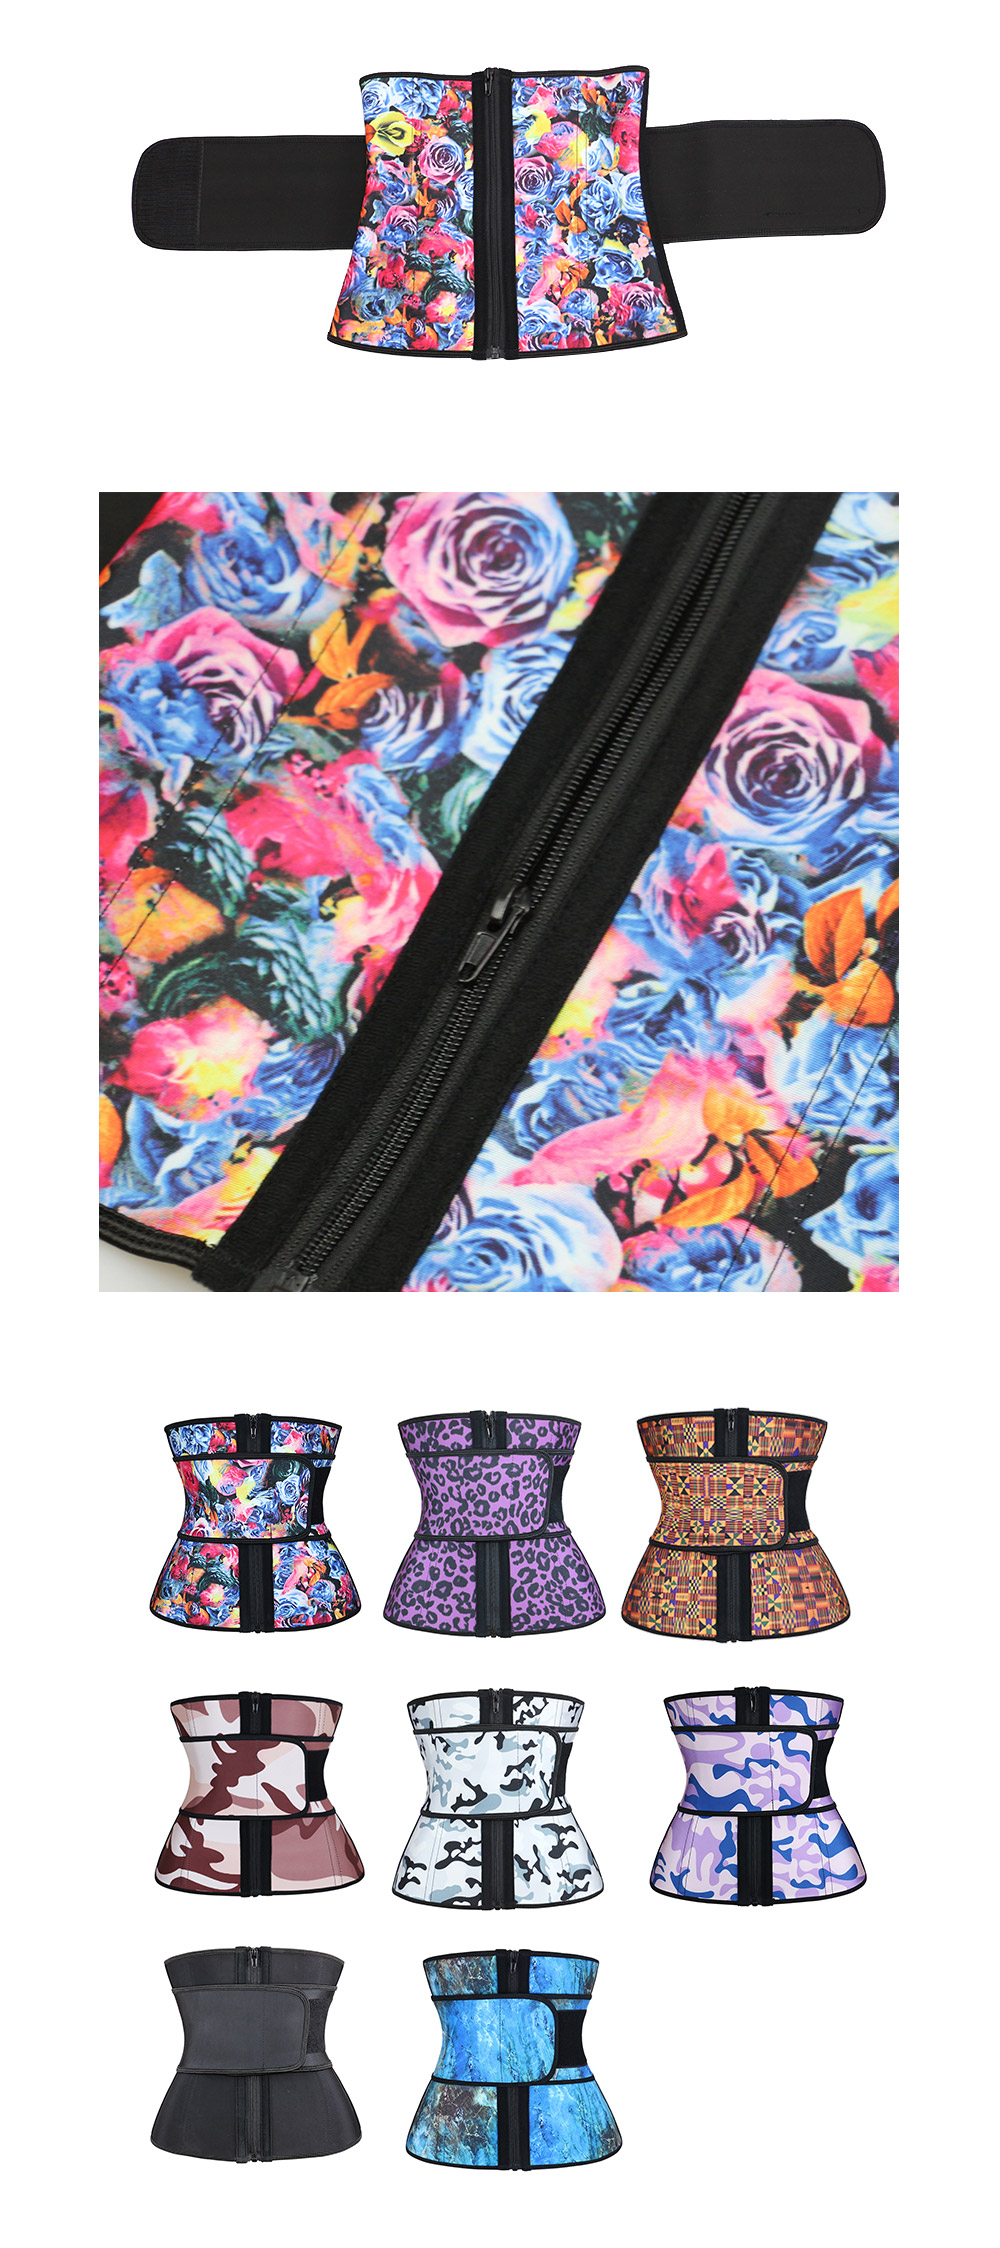 NB1695-2 Atbuty High Compression Waist Trainer Cincher Zipper Rose Printing Tummy Lose Weight Latex Body Shapers Corsets (9)